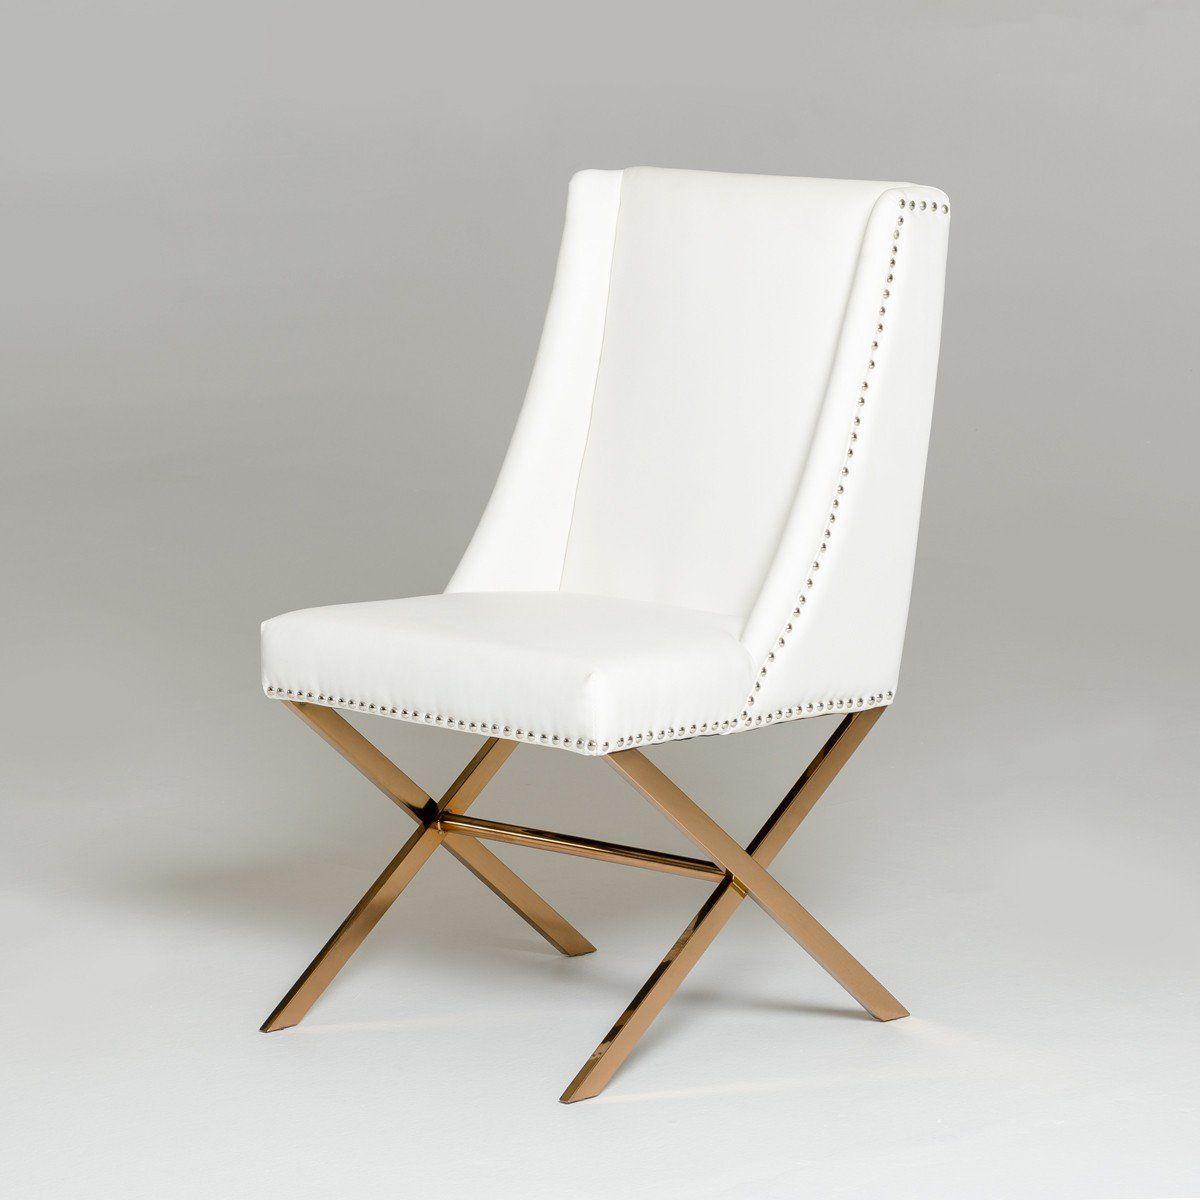 Cool Vig Furniture Vgvcb8356 Wht Modrest Modern White Rose Gold Dining Chair Sale At Contemporary Furniture Warehouse Today Only Dailytribune Chair Design For Home Dailytribuneorg